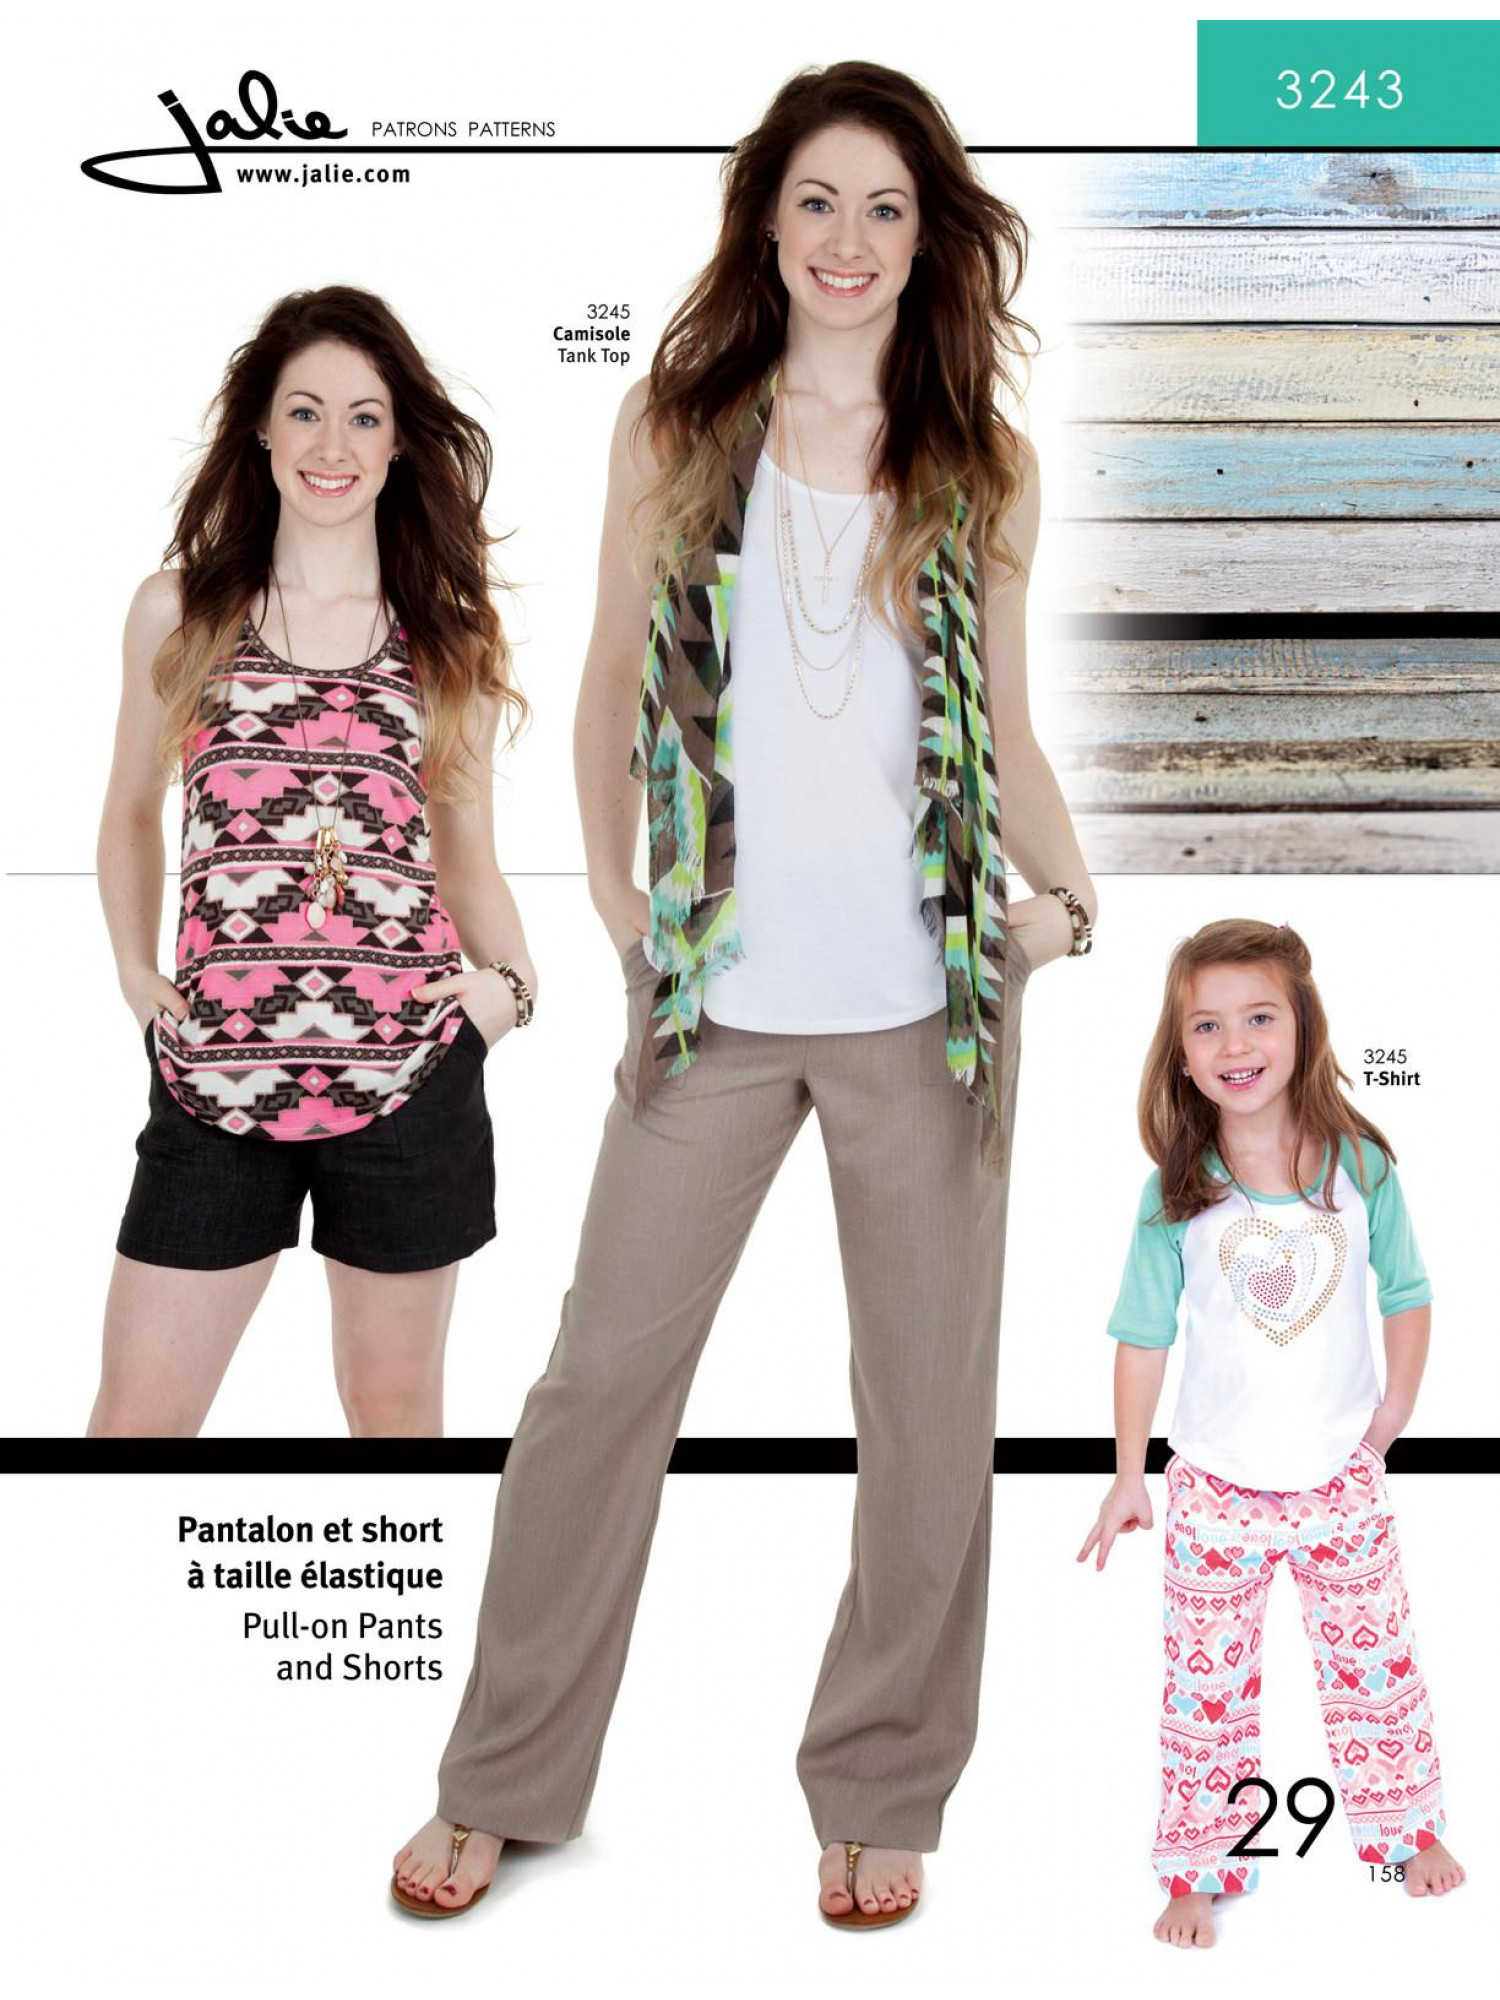 Jalie Pull-On Pants and Shorts (3243) Pattern